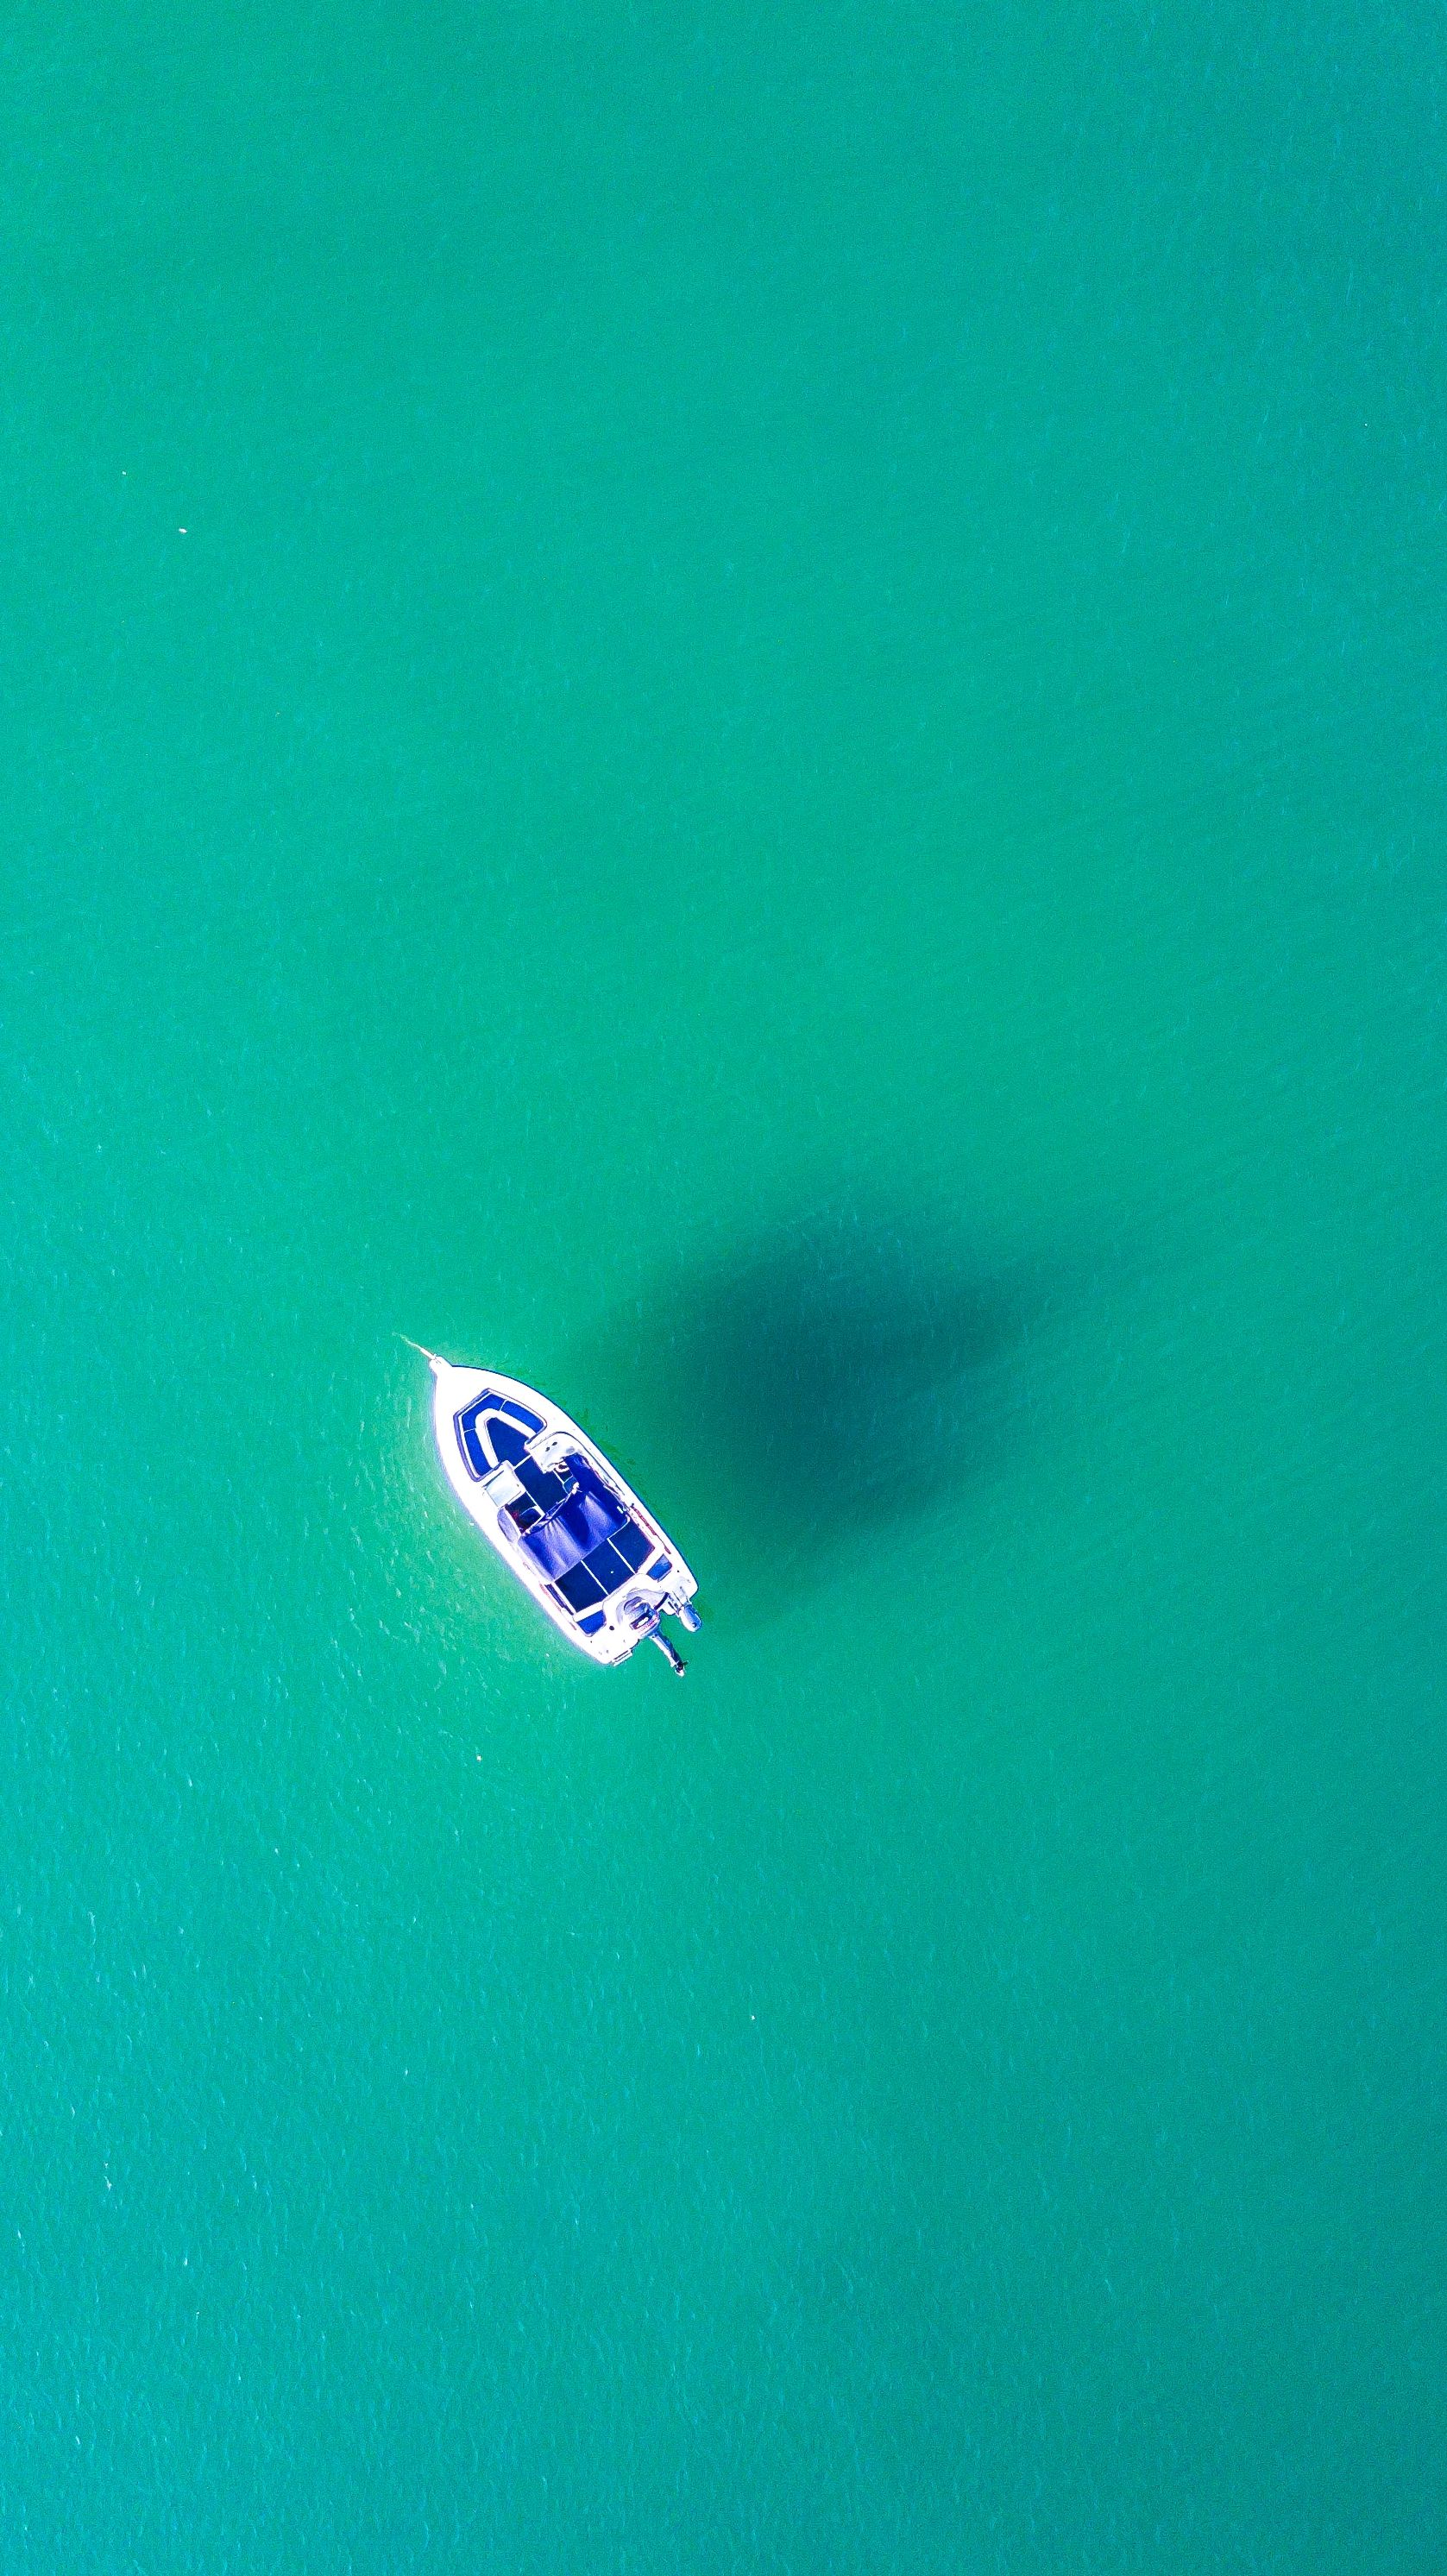 Boat in Transparent Water Minimal iPhone Wallpaper iphoneswallpapers com